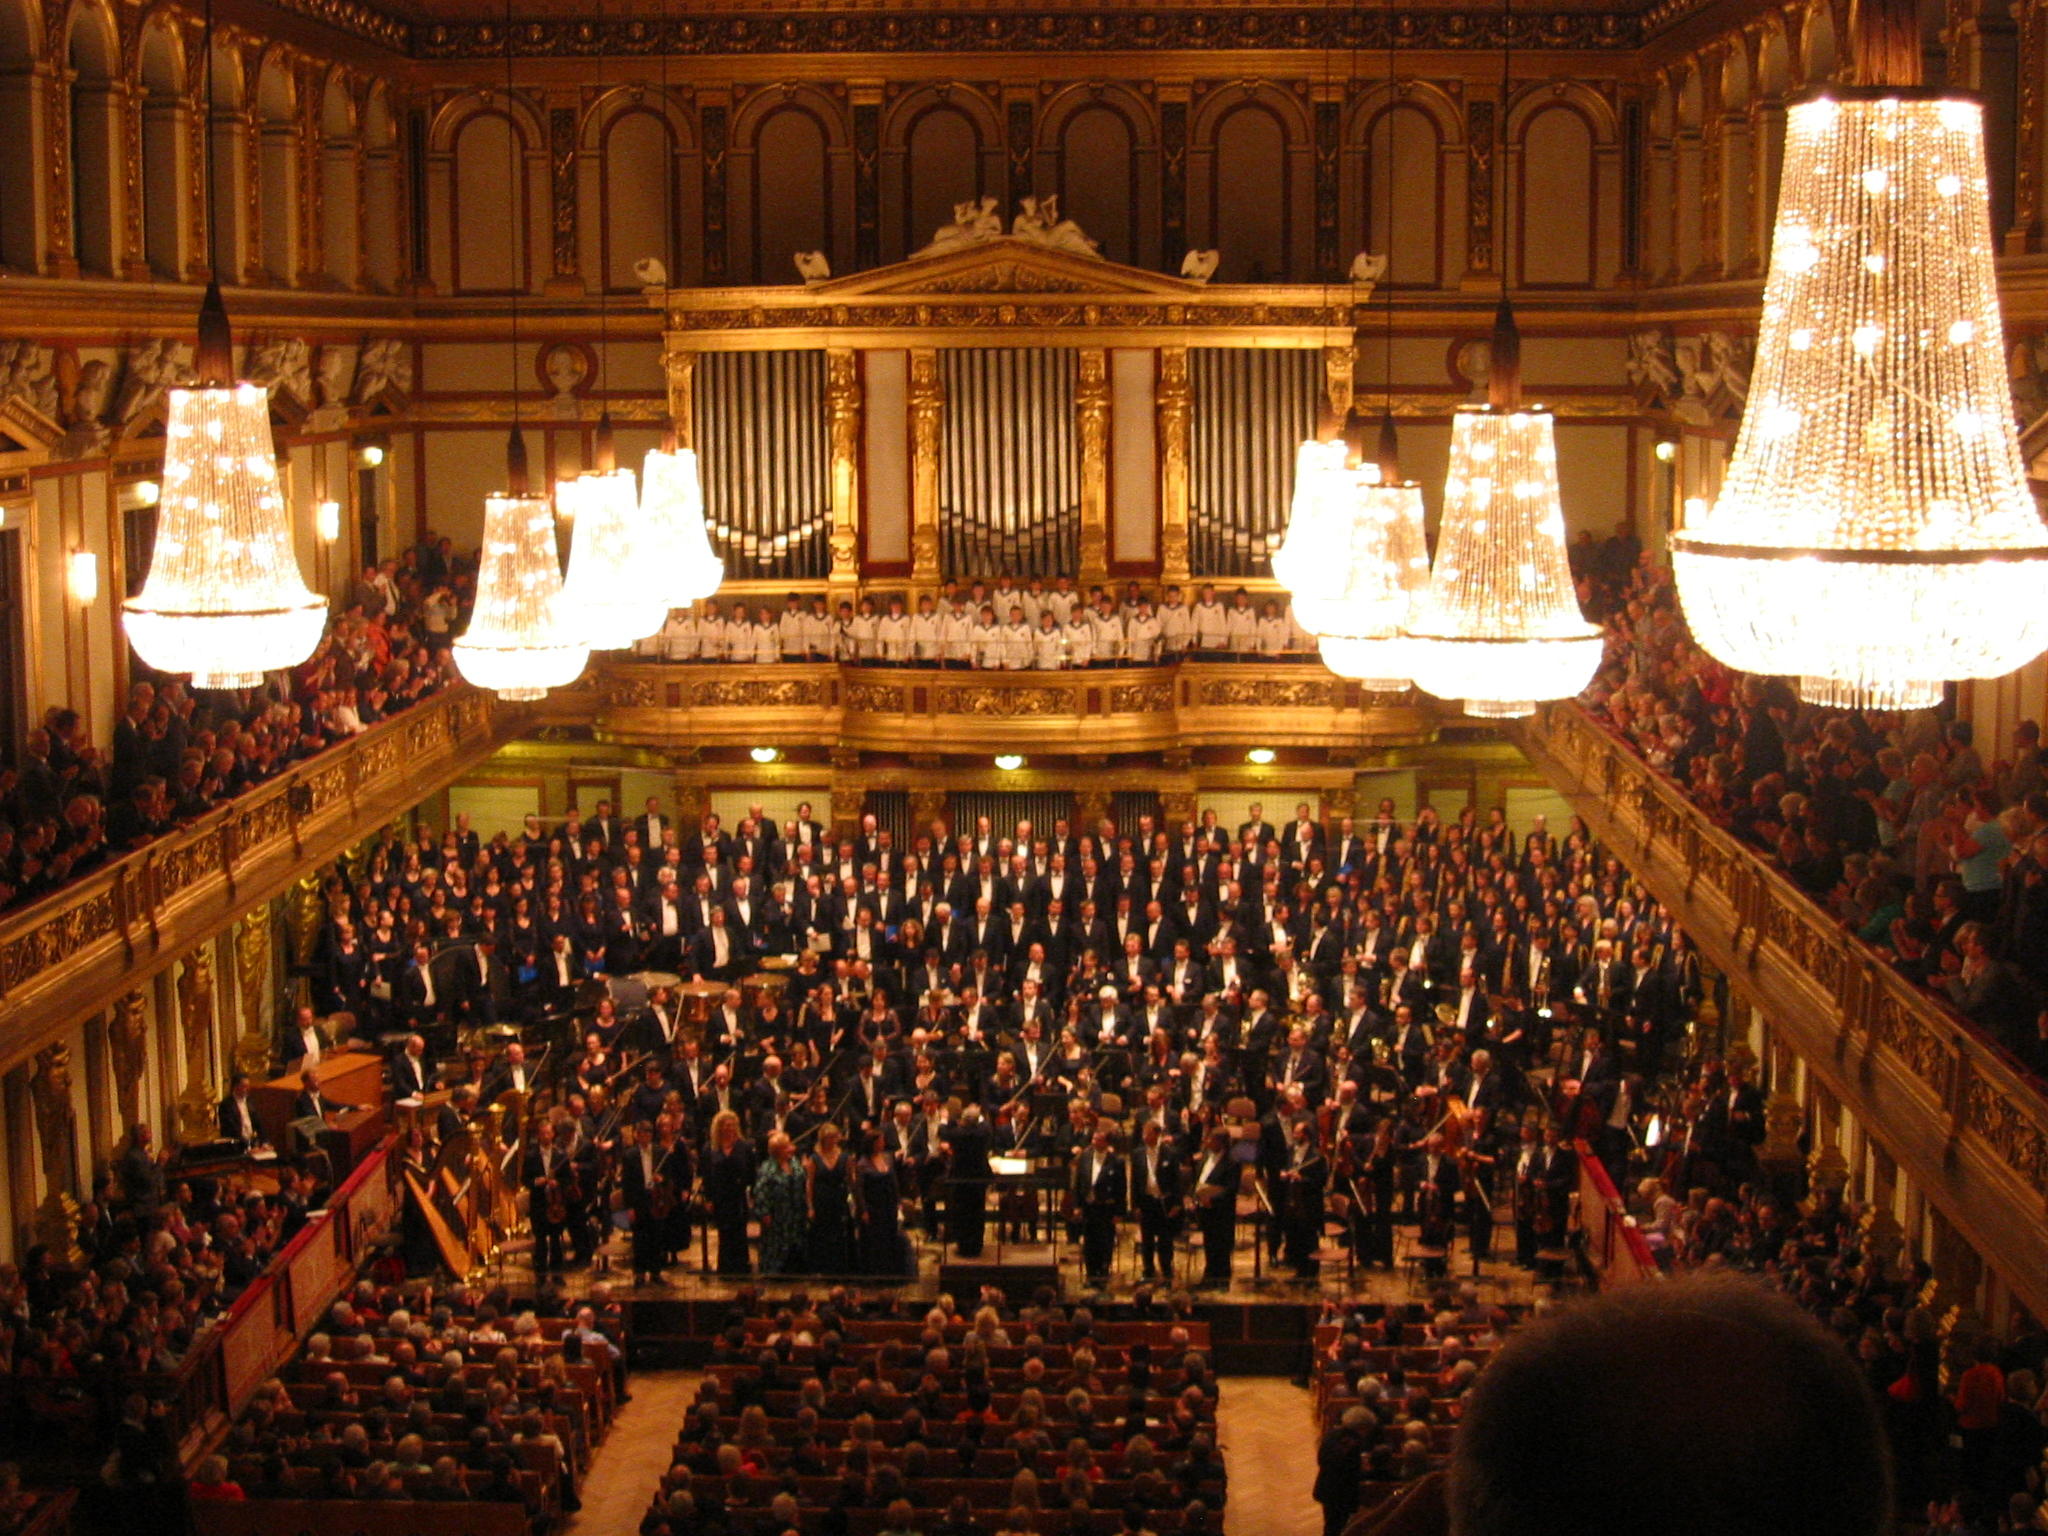 The Goldener Saal at the Musikverein in Vienna, a public concert hall, may have been a fortuitous architectural accident in the 1880s, but it is hard science in the 21st century